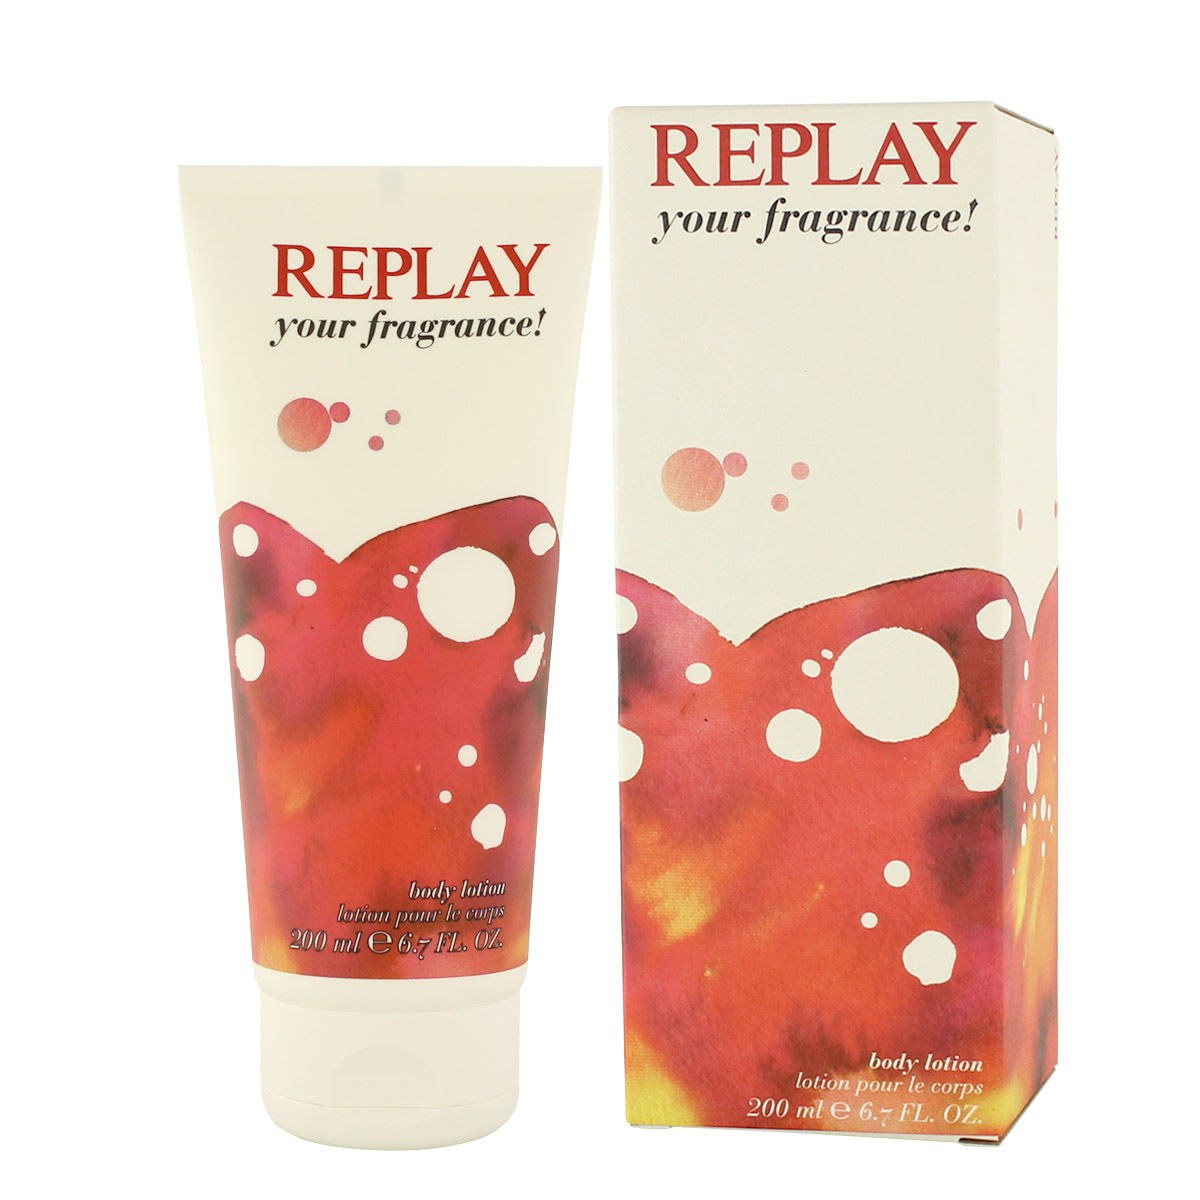 Replay your fragrance! for Women BL 200 ml W